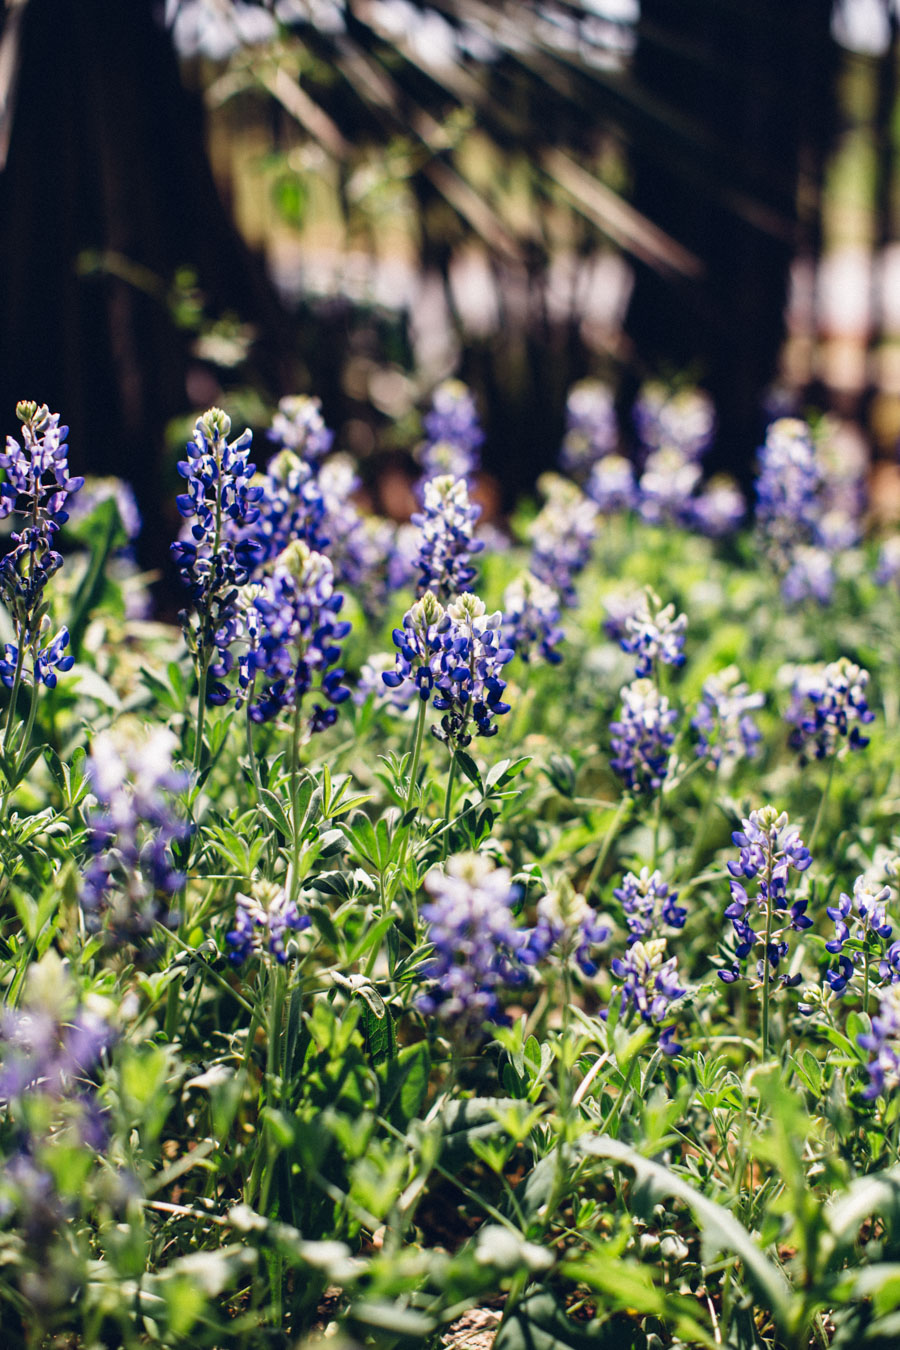 Wild Texas - Texas Blue Bonnet flowers